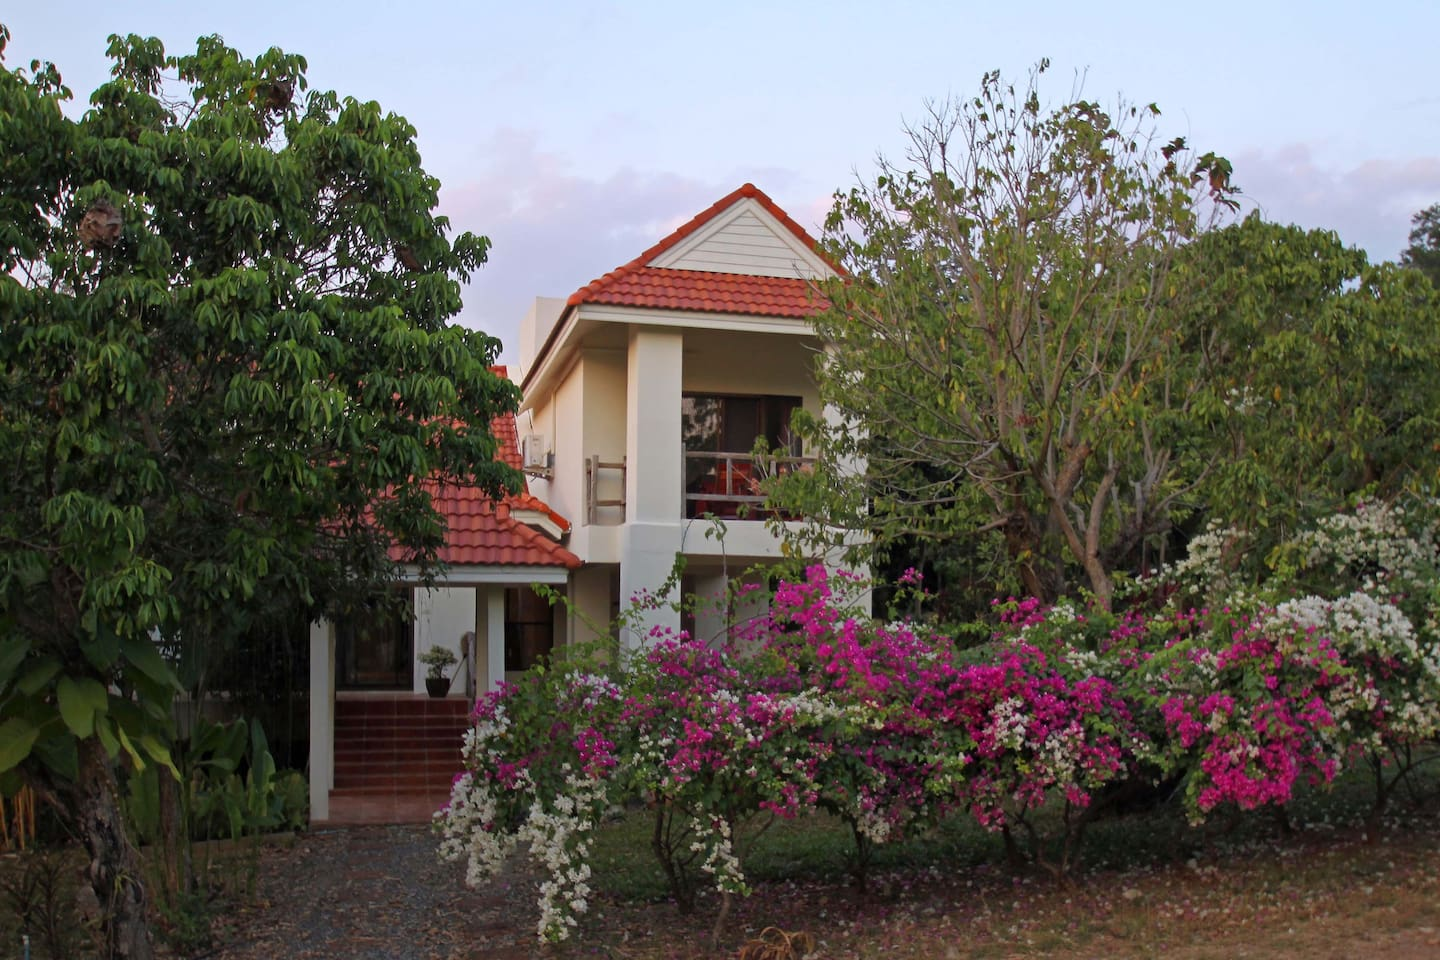 View from road towards house showing balcony of 1st floor bedroom. Magnificent bouganville has flowers most of the year. Longan fruit tree to the right, behind it is the main terrace.